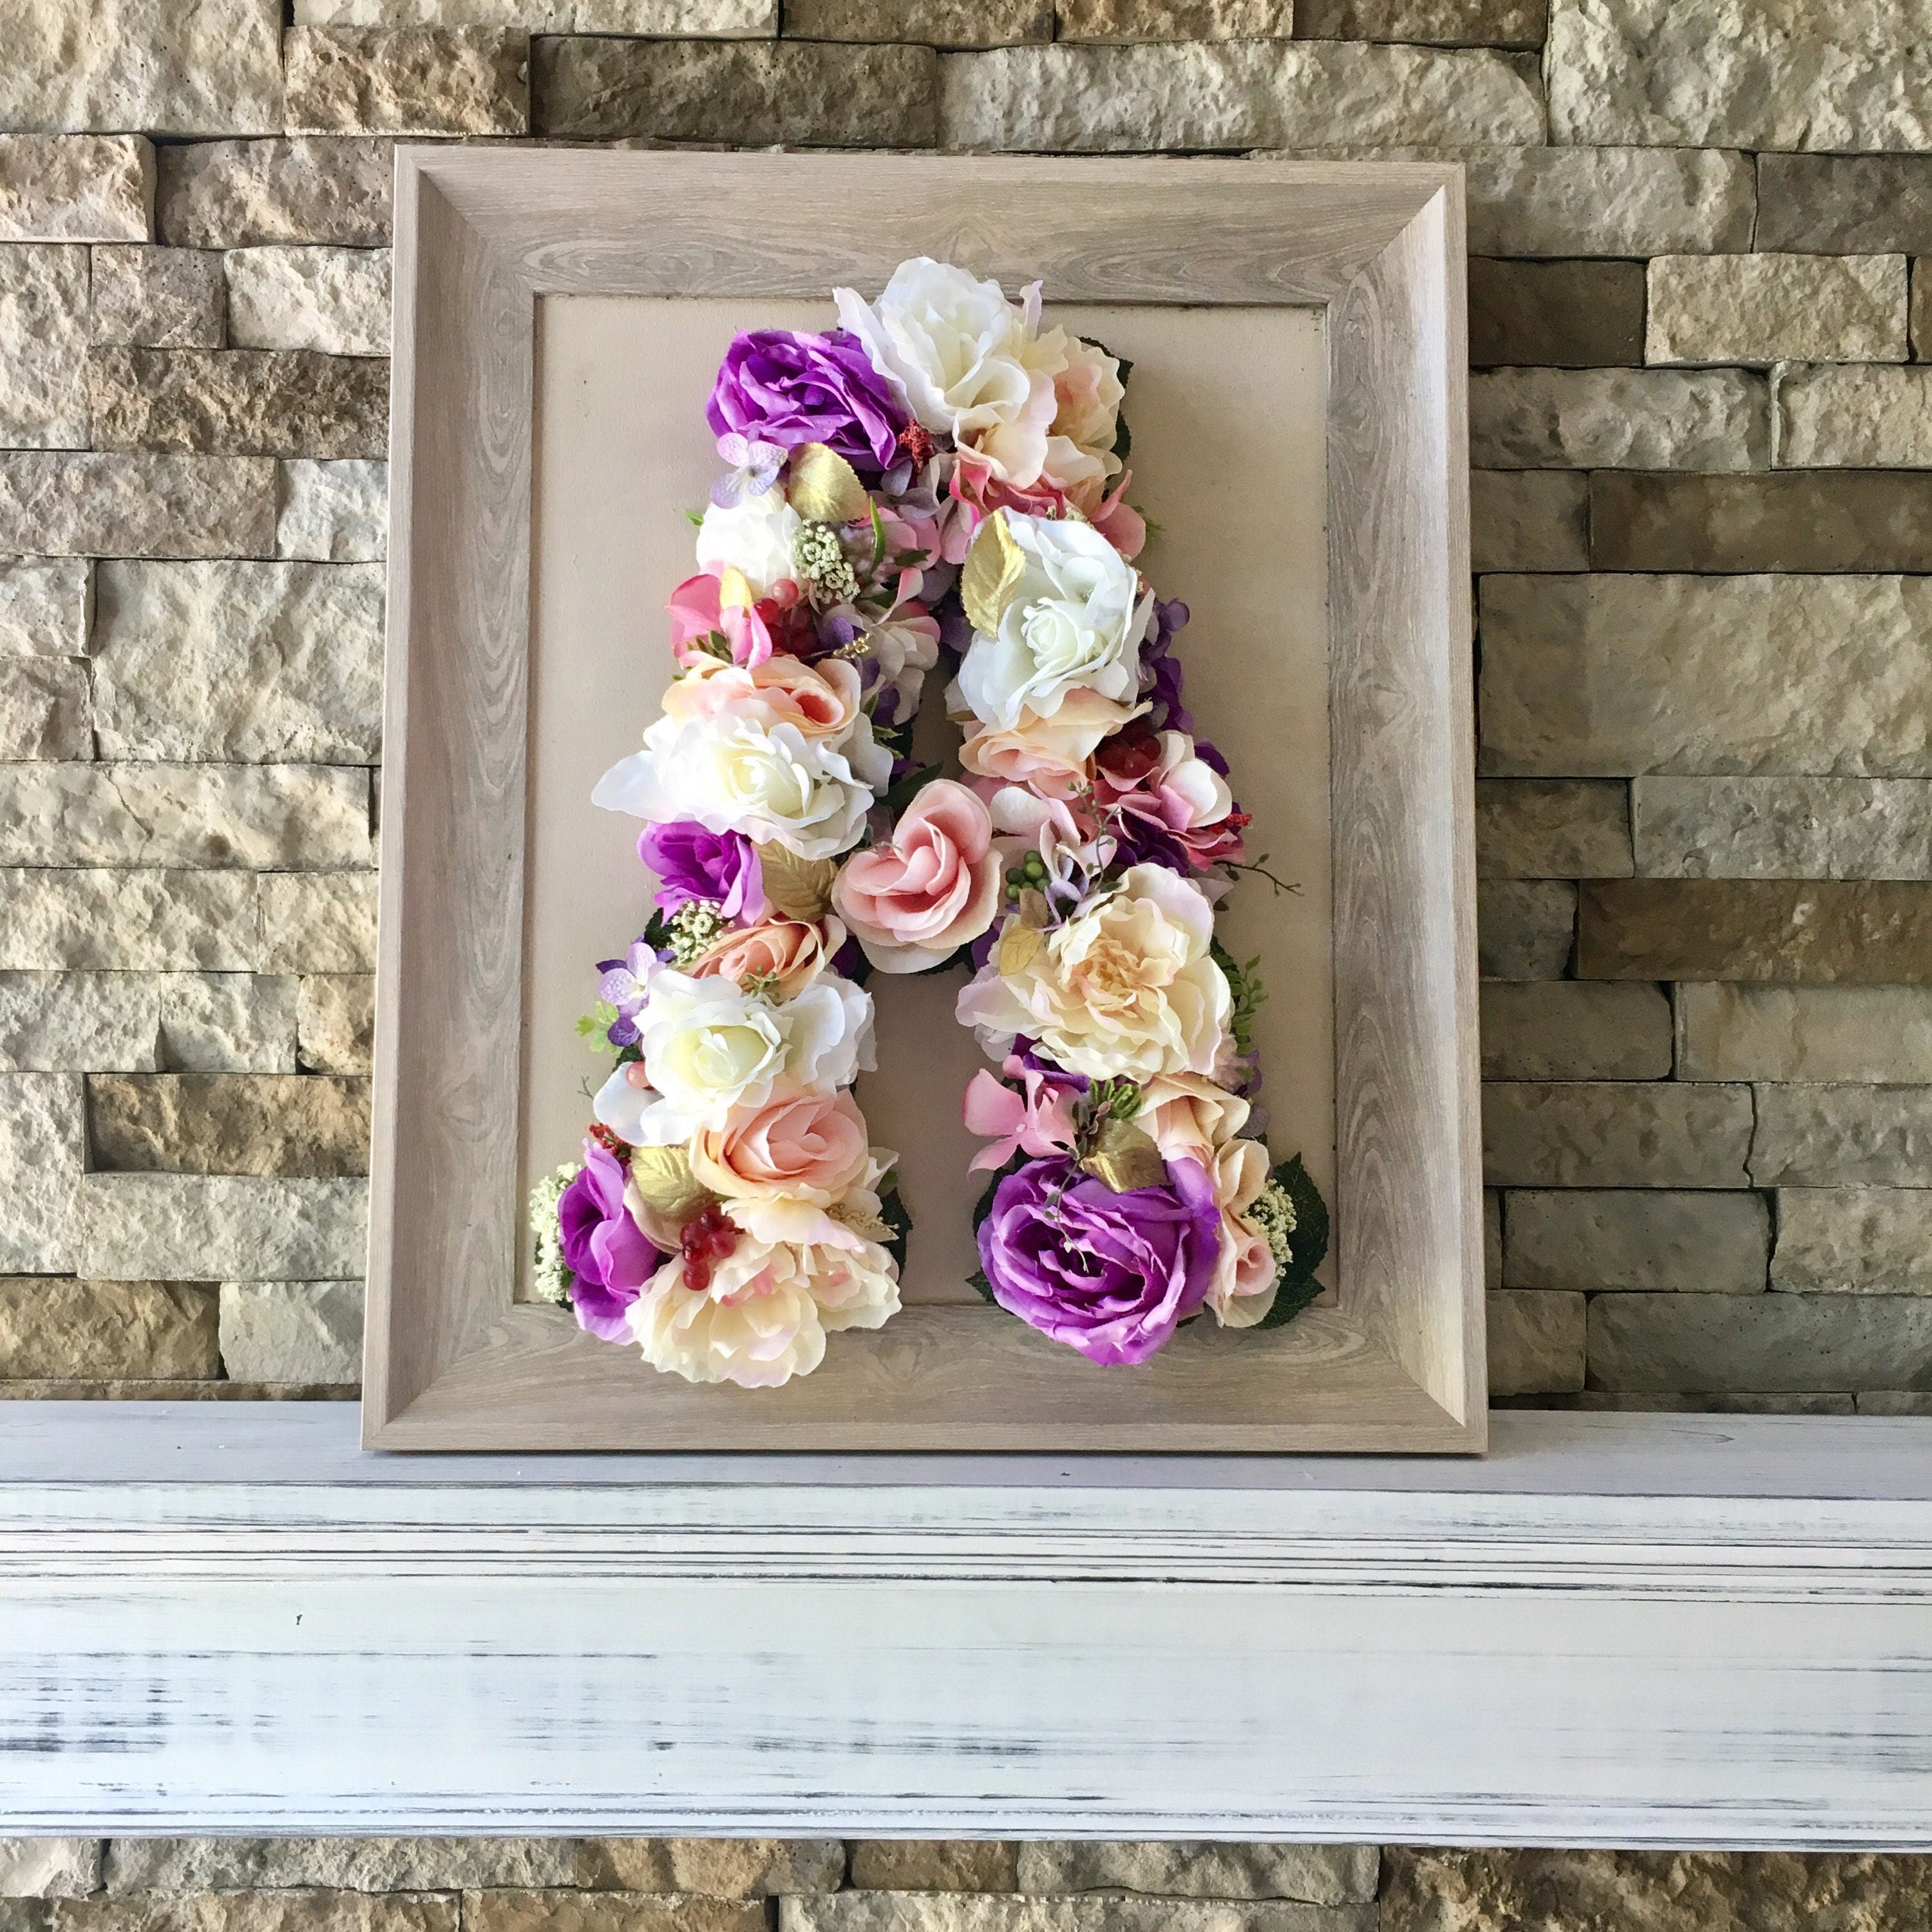 watch decor youtube wreath plastic flower house diy spoon rose wall jessica hanging joaquin